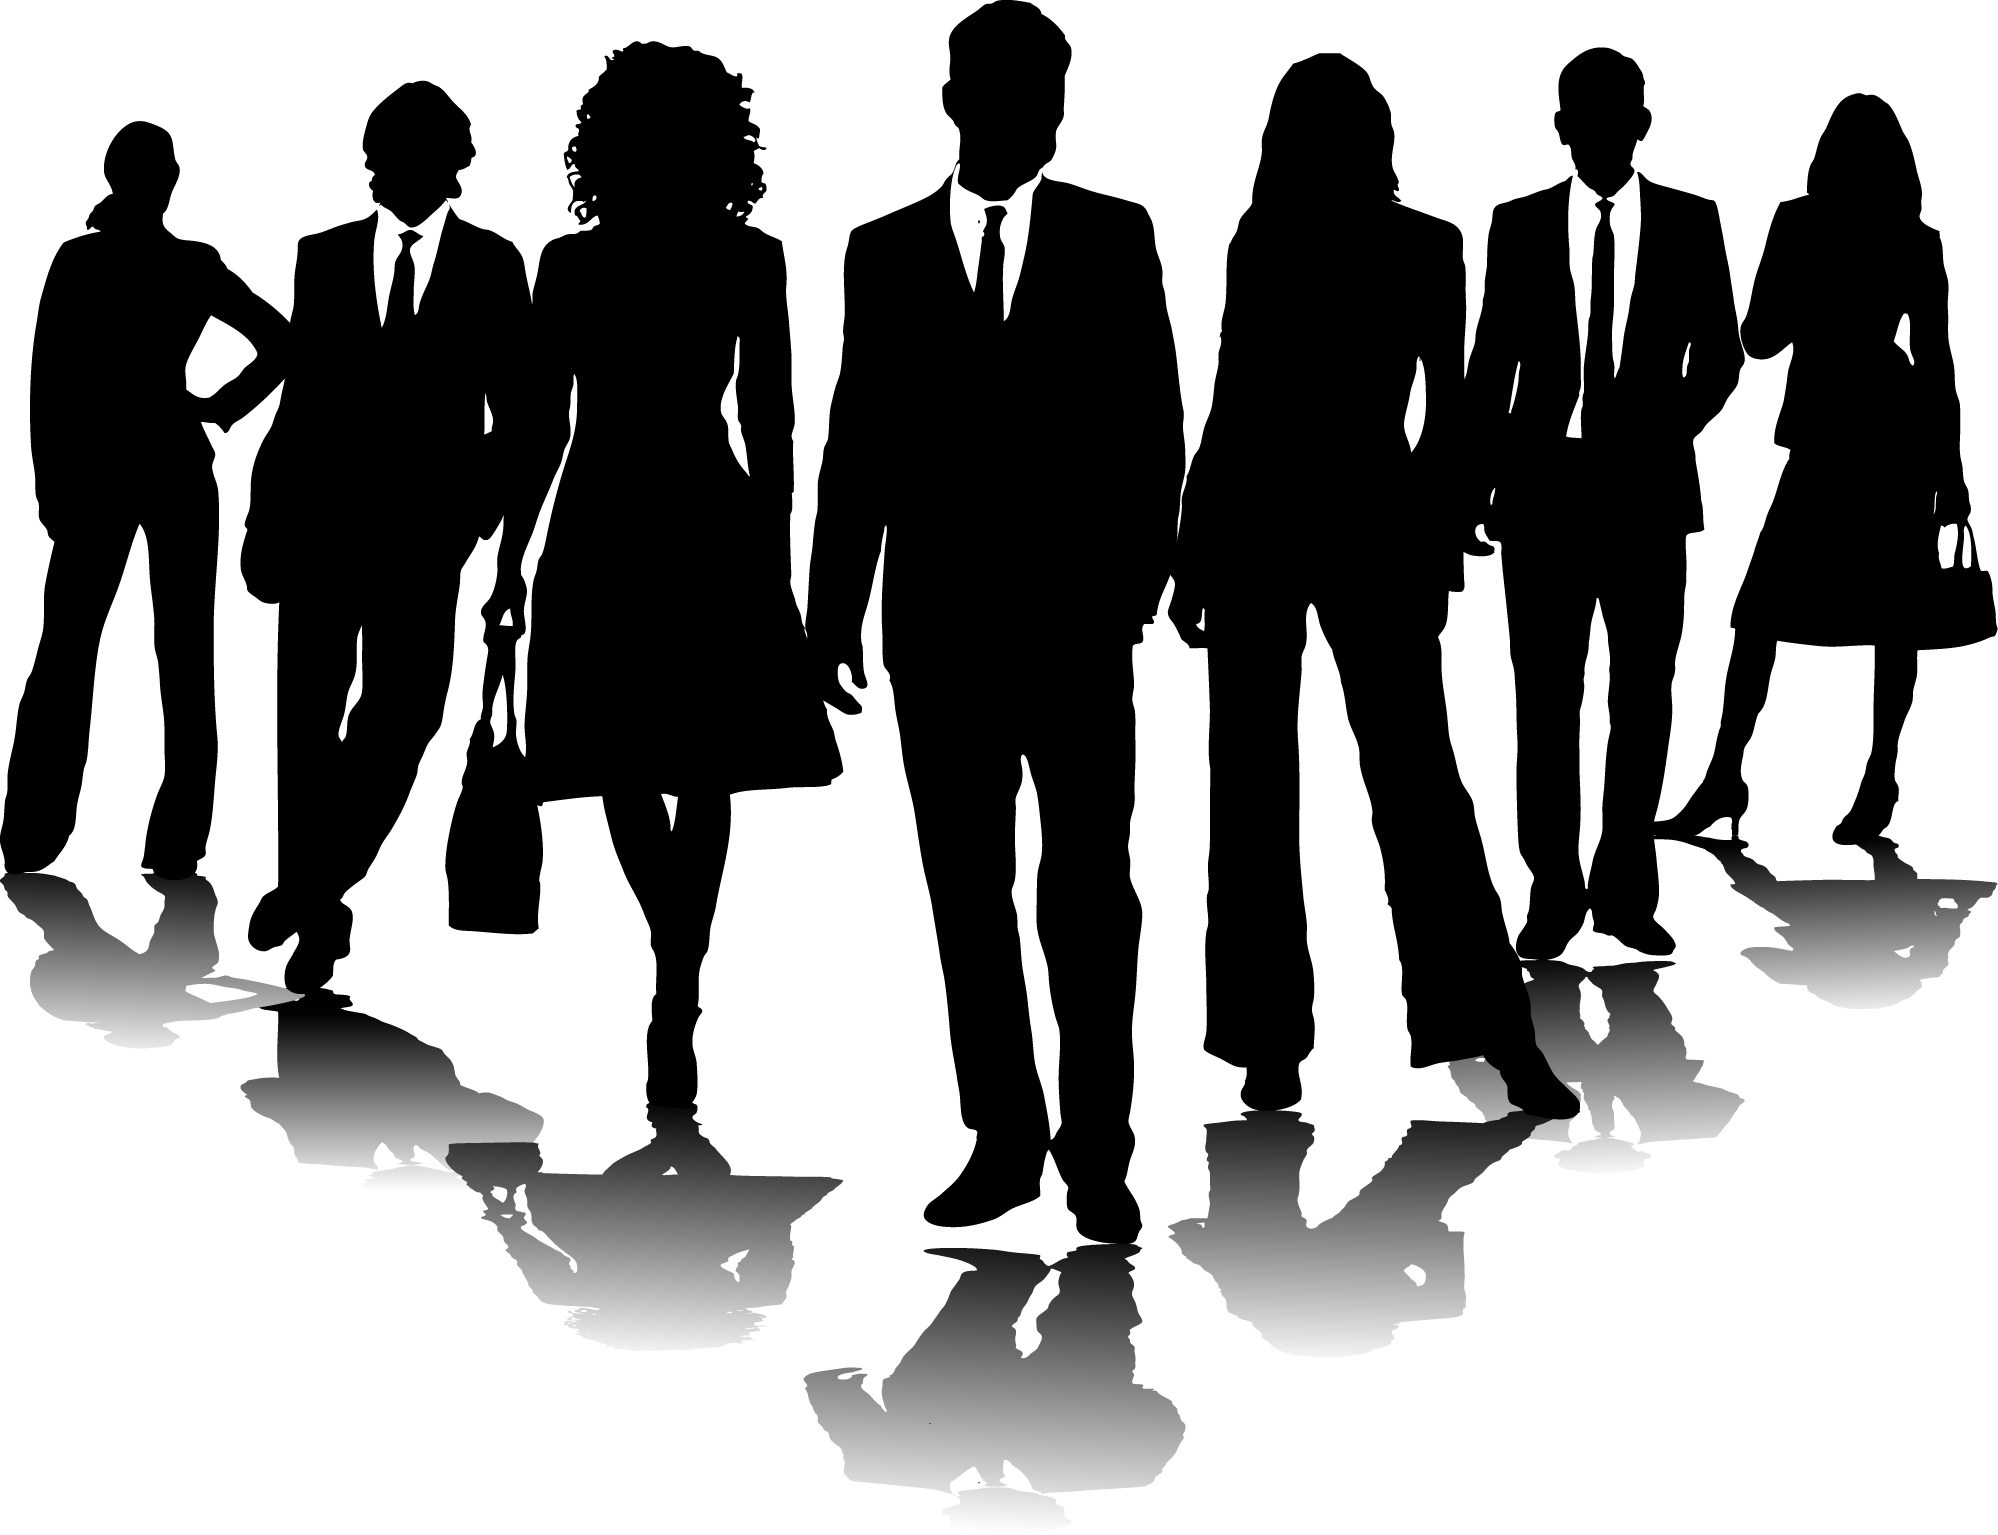 3 business people clipart image library library Clipart business people 3 » Clipart Portal image library library